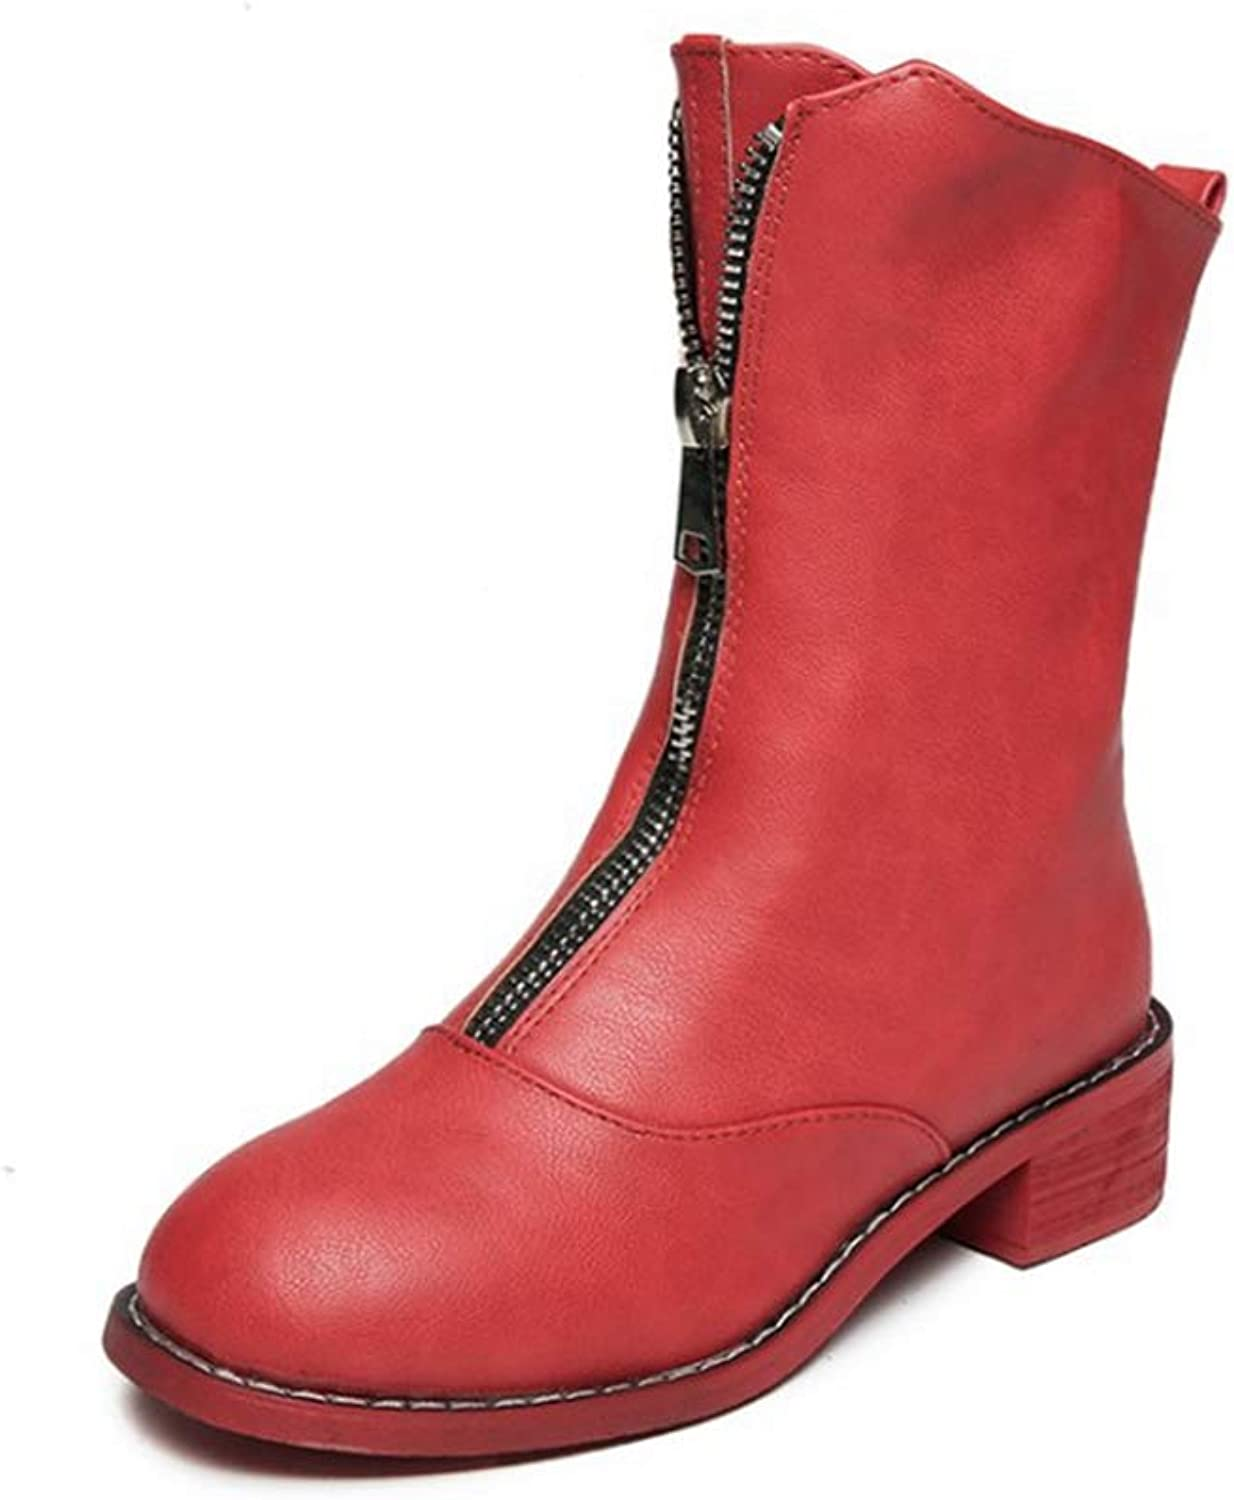 Hoxekle Woman Mid Calf Boots Front Zipper Low Square Heel Round Toe Female Sexy Casual Leisure Walking Outdoor shoes